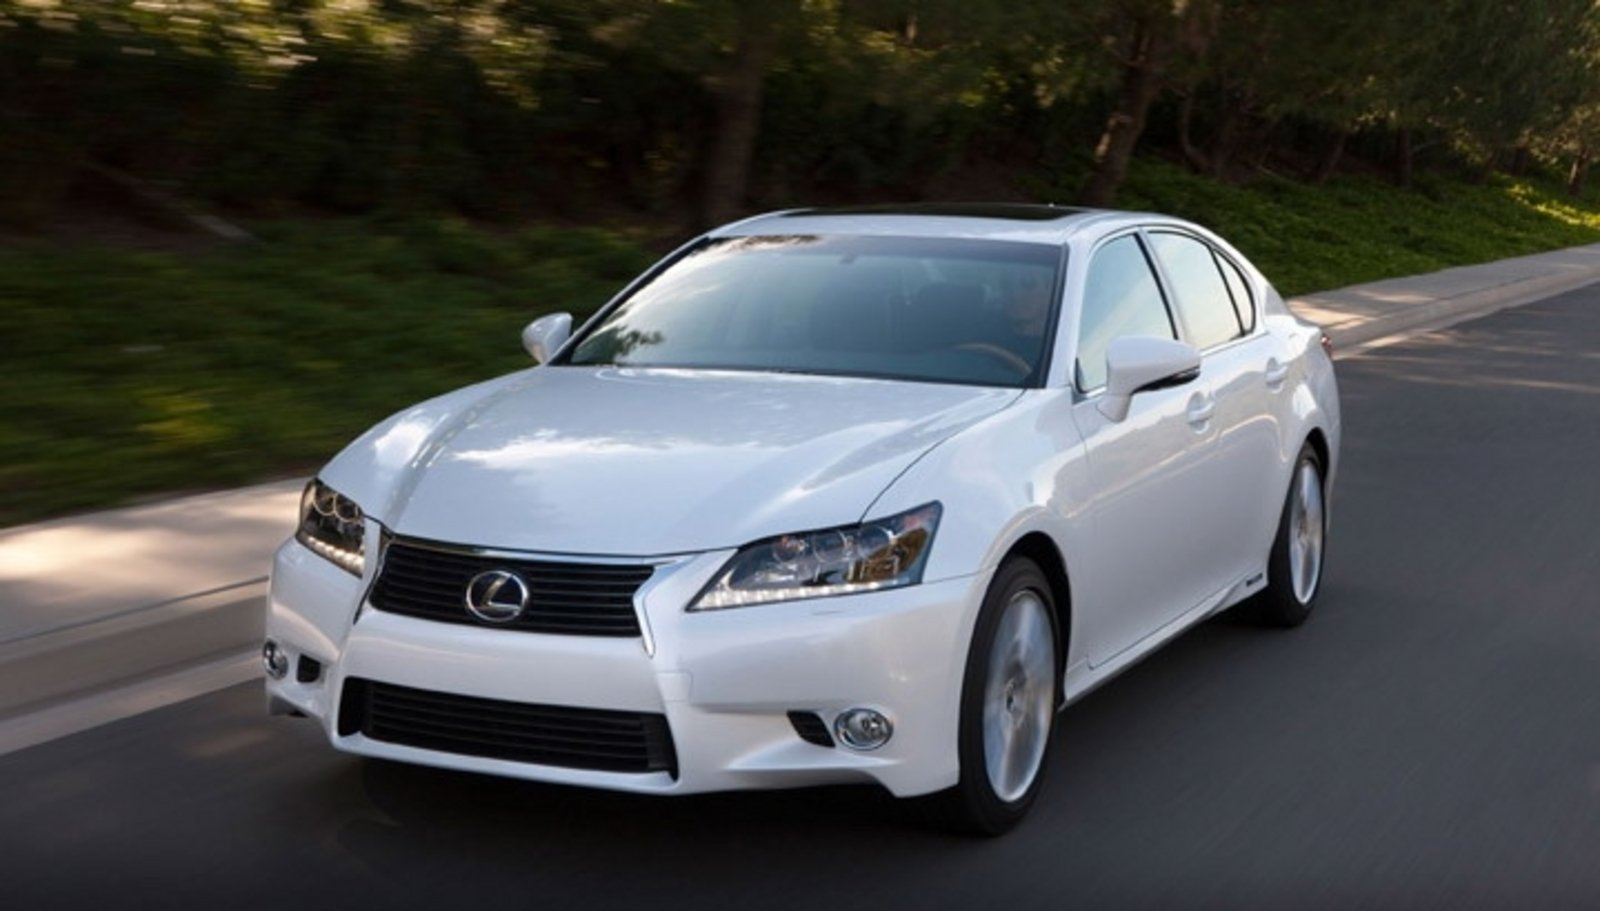 2015 lexus gs 450h f sport review top speed. Black Bedroom Furniture Sets. Home Design Ideas